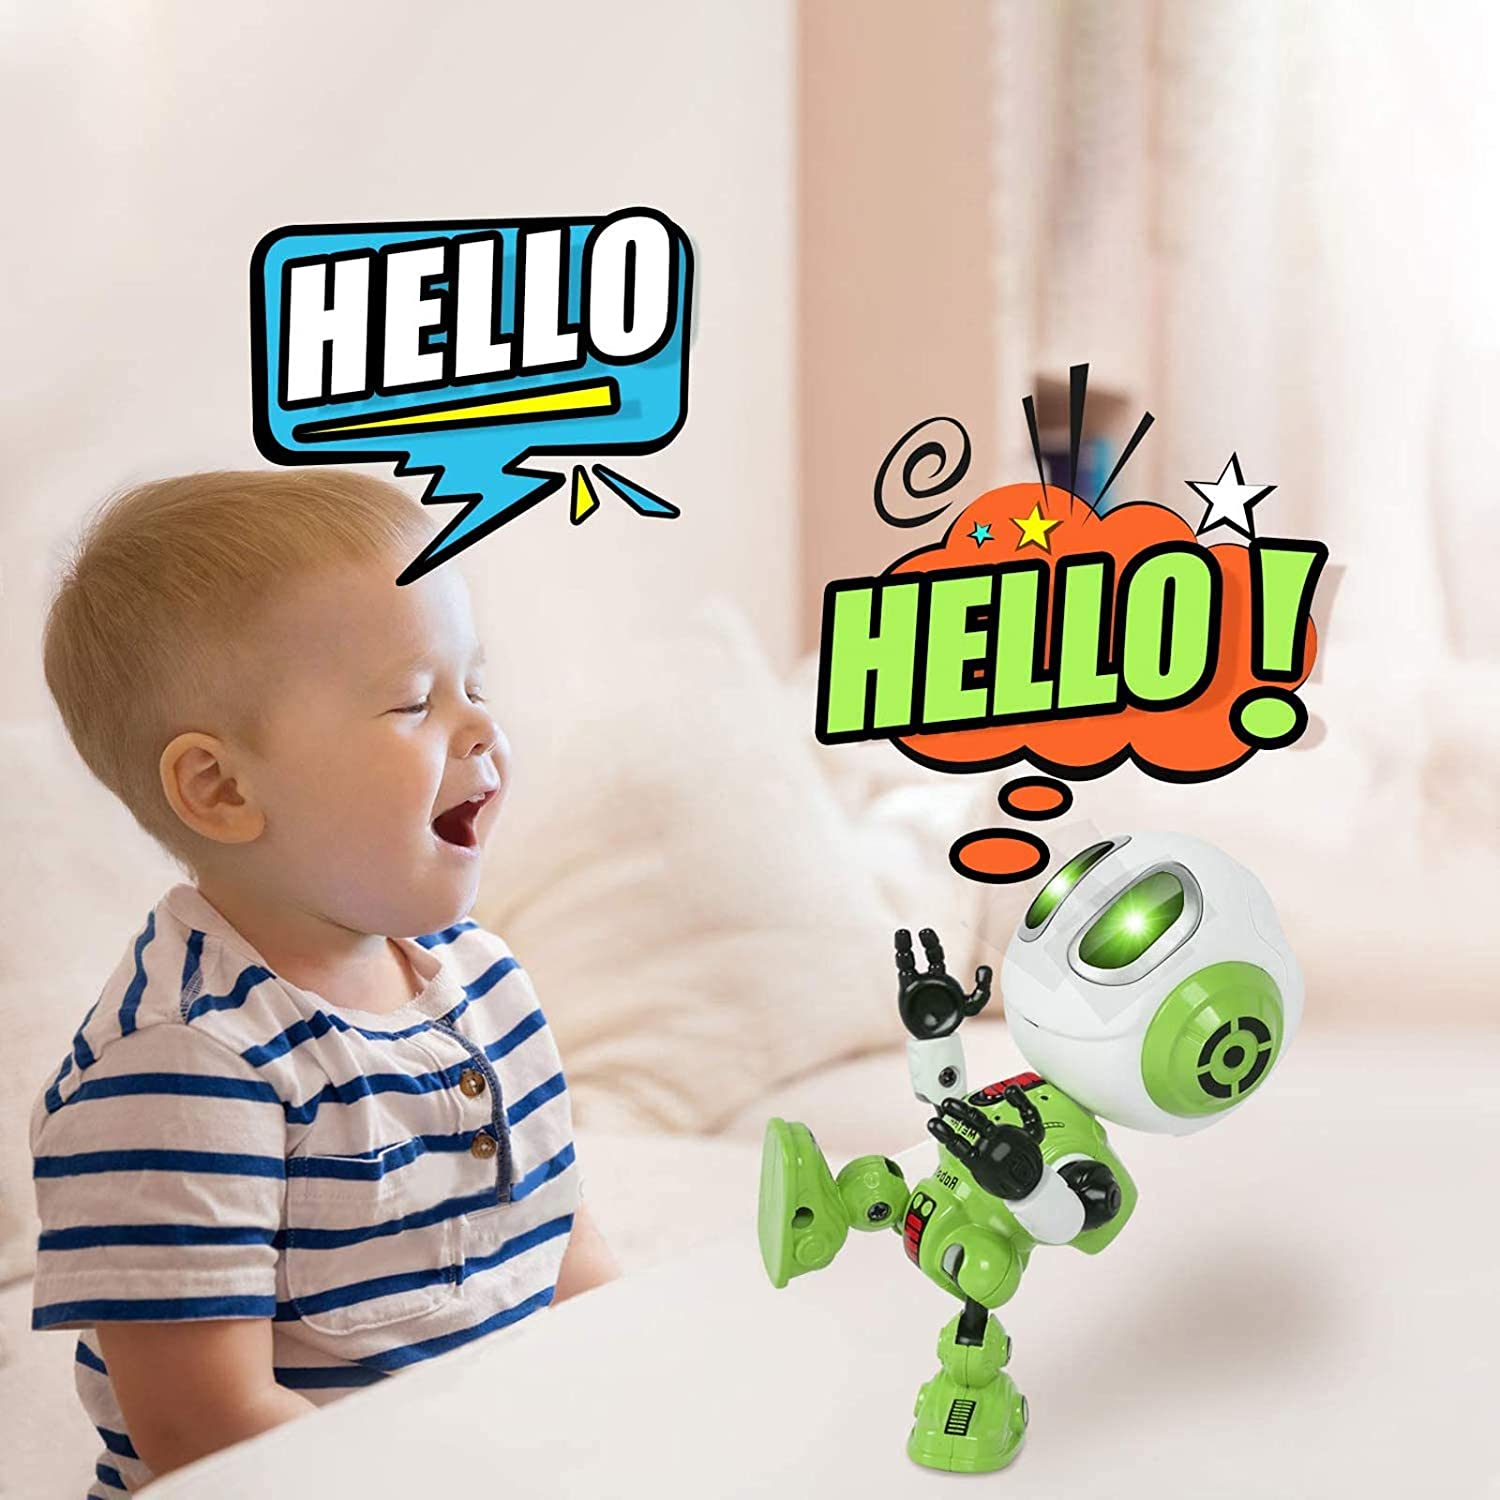 MING YING 66 Talking Robot for Kids Toys Green Toys for 2 3 4 5 6 7 8 Year Old Girls and Boys,Christmas Toys for Age 2+ Boys and Girls Gift Mini Robot Toys That Repeats What You Say